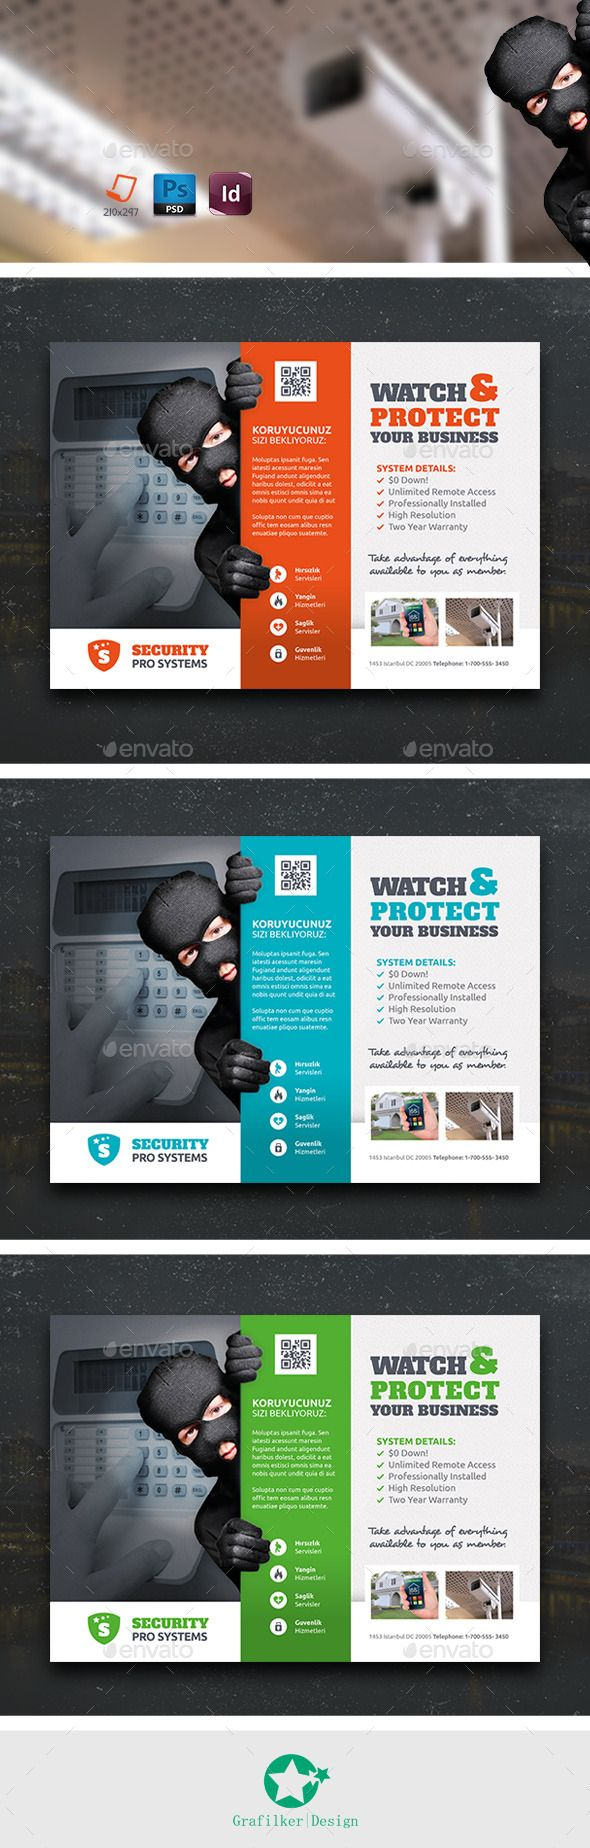 security systems flyer templates flyers photoshop and flyer buy security systems flyer templates by grafilker on graphicriver security systems flyer templates fully layered indd fully layered psd 300 dpi